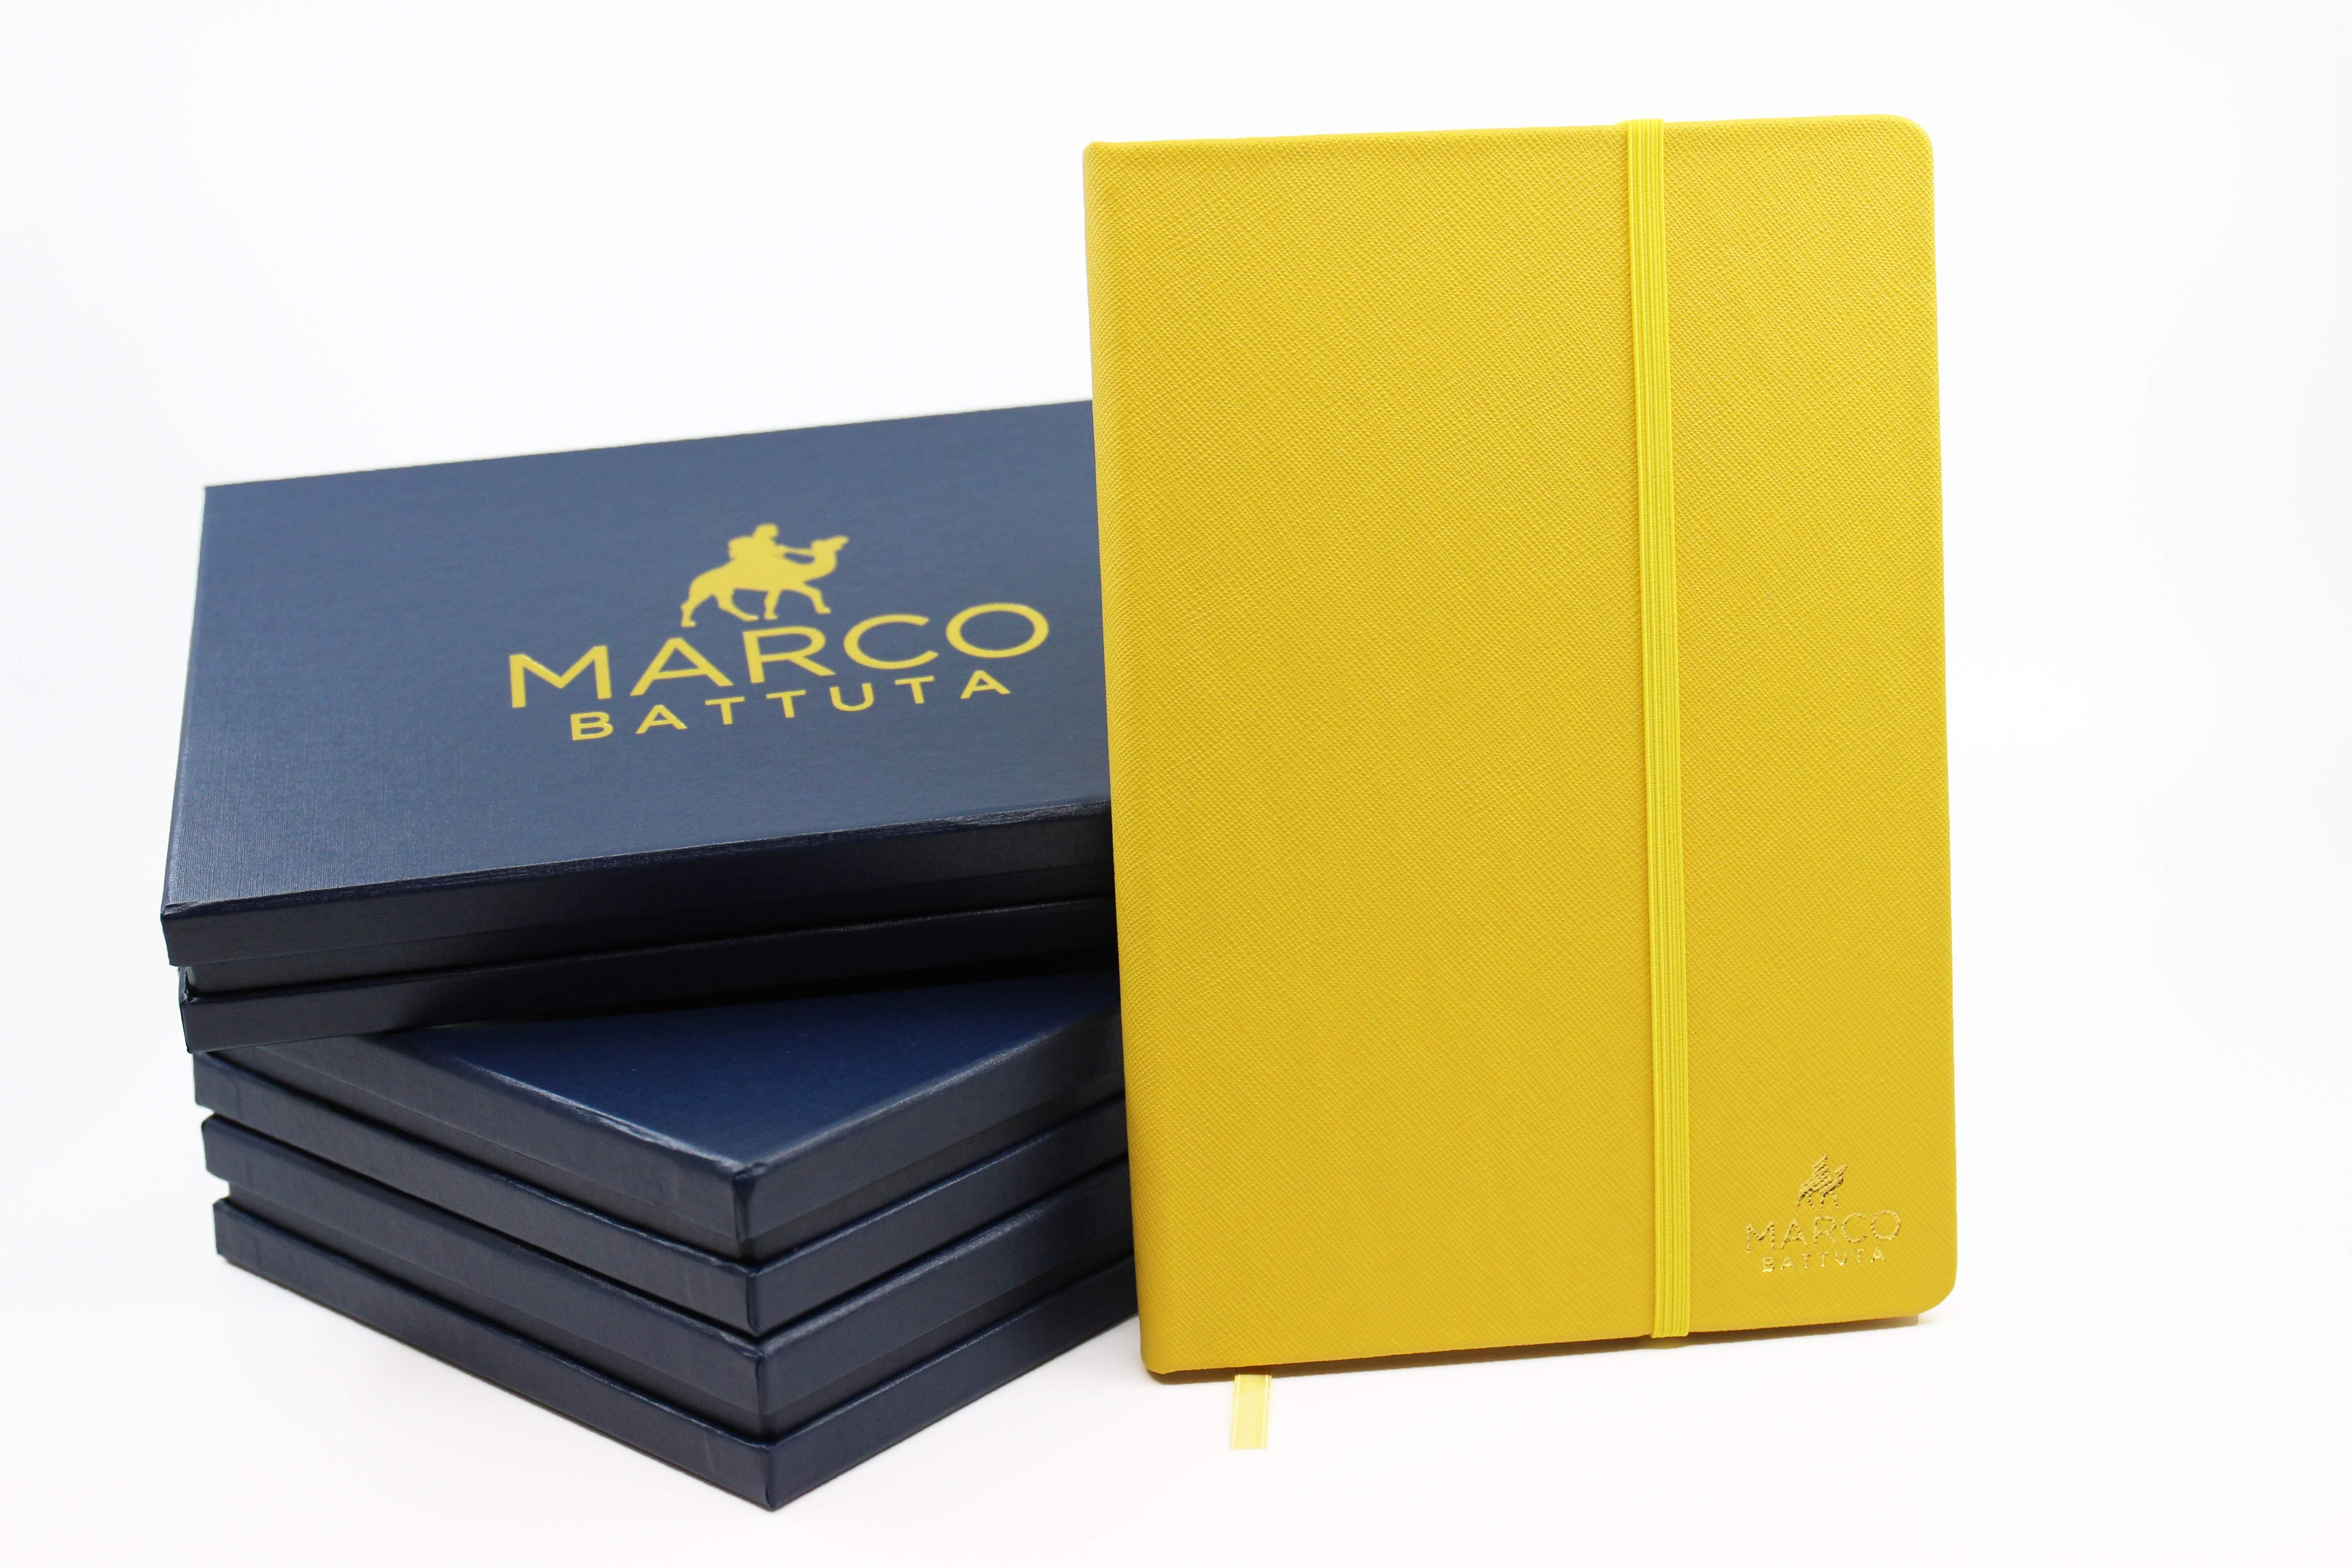 tuscan-yellow-genuine-leather-travel-journal-ruled-a5-148mm-210mm